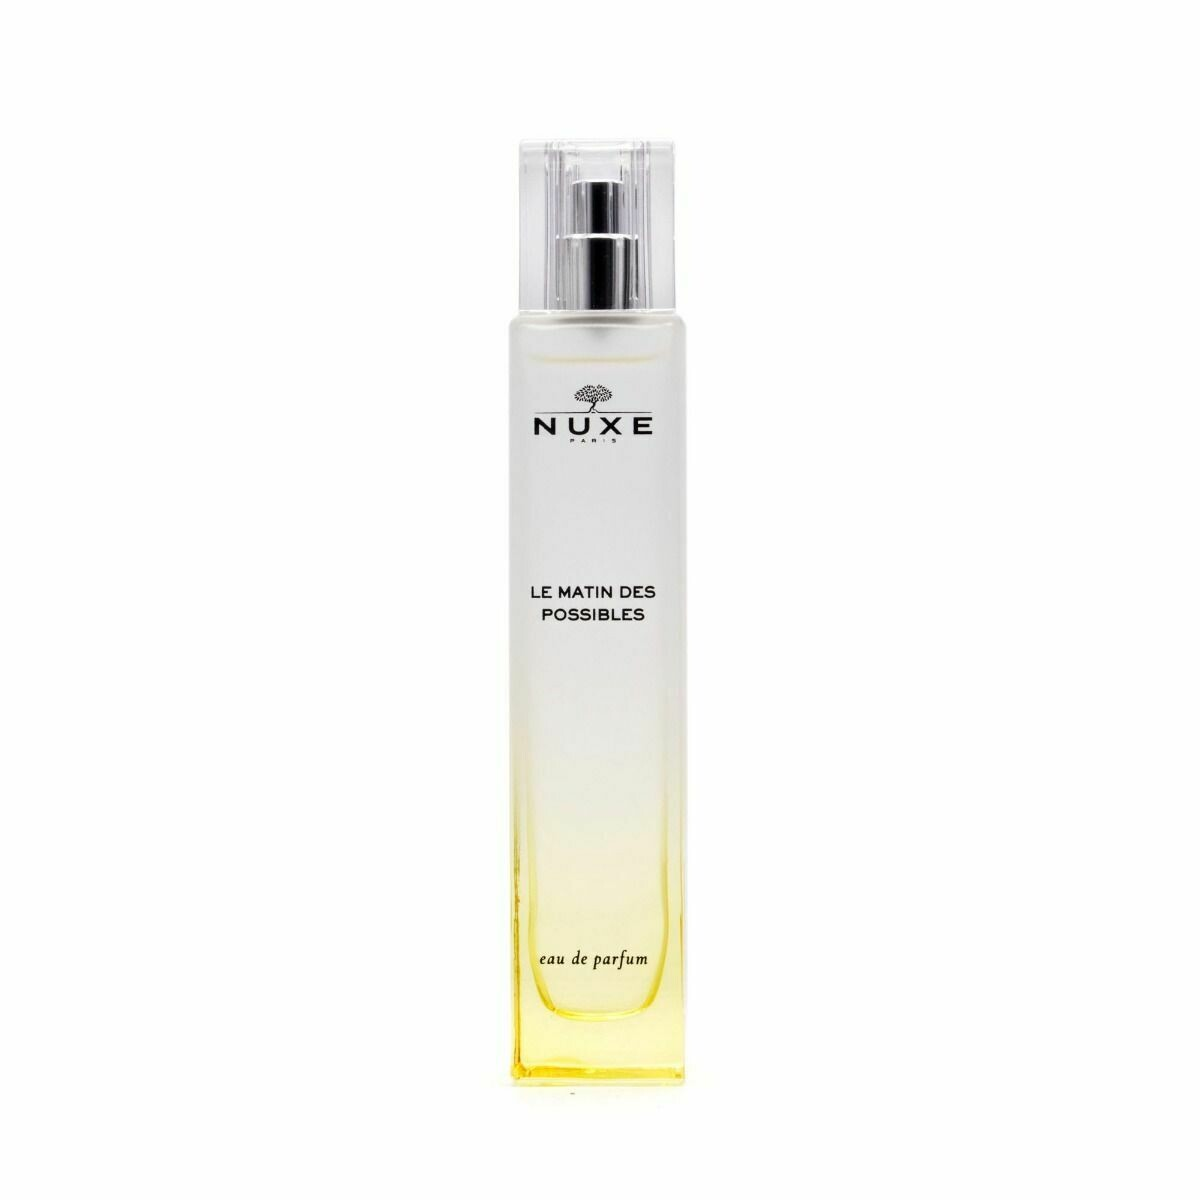 NUXE PERFUME LE MATIN DES POSSIBLES 50 ML